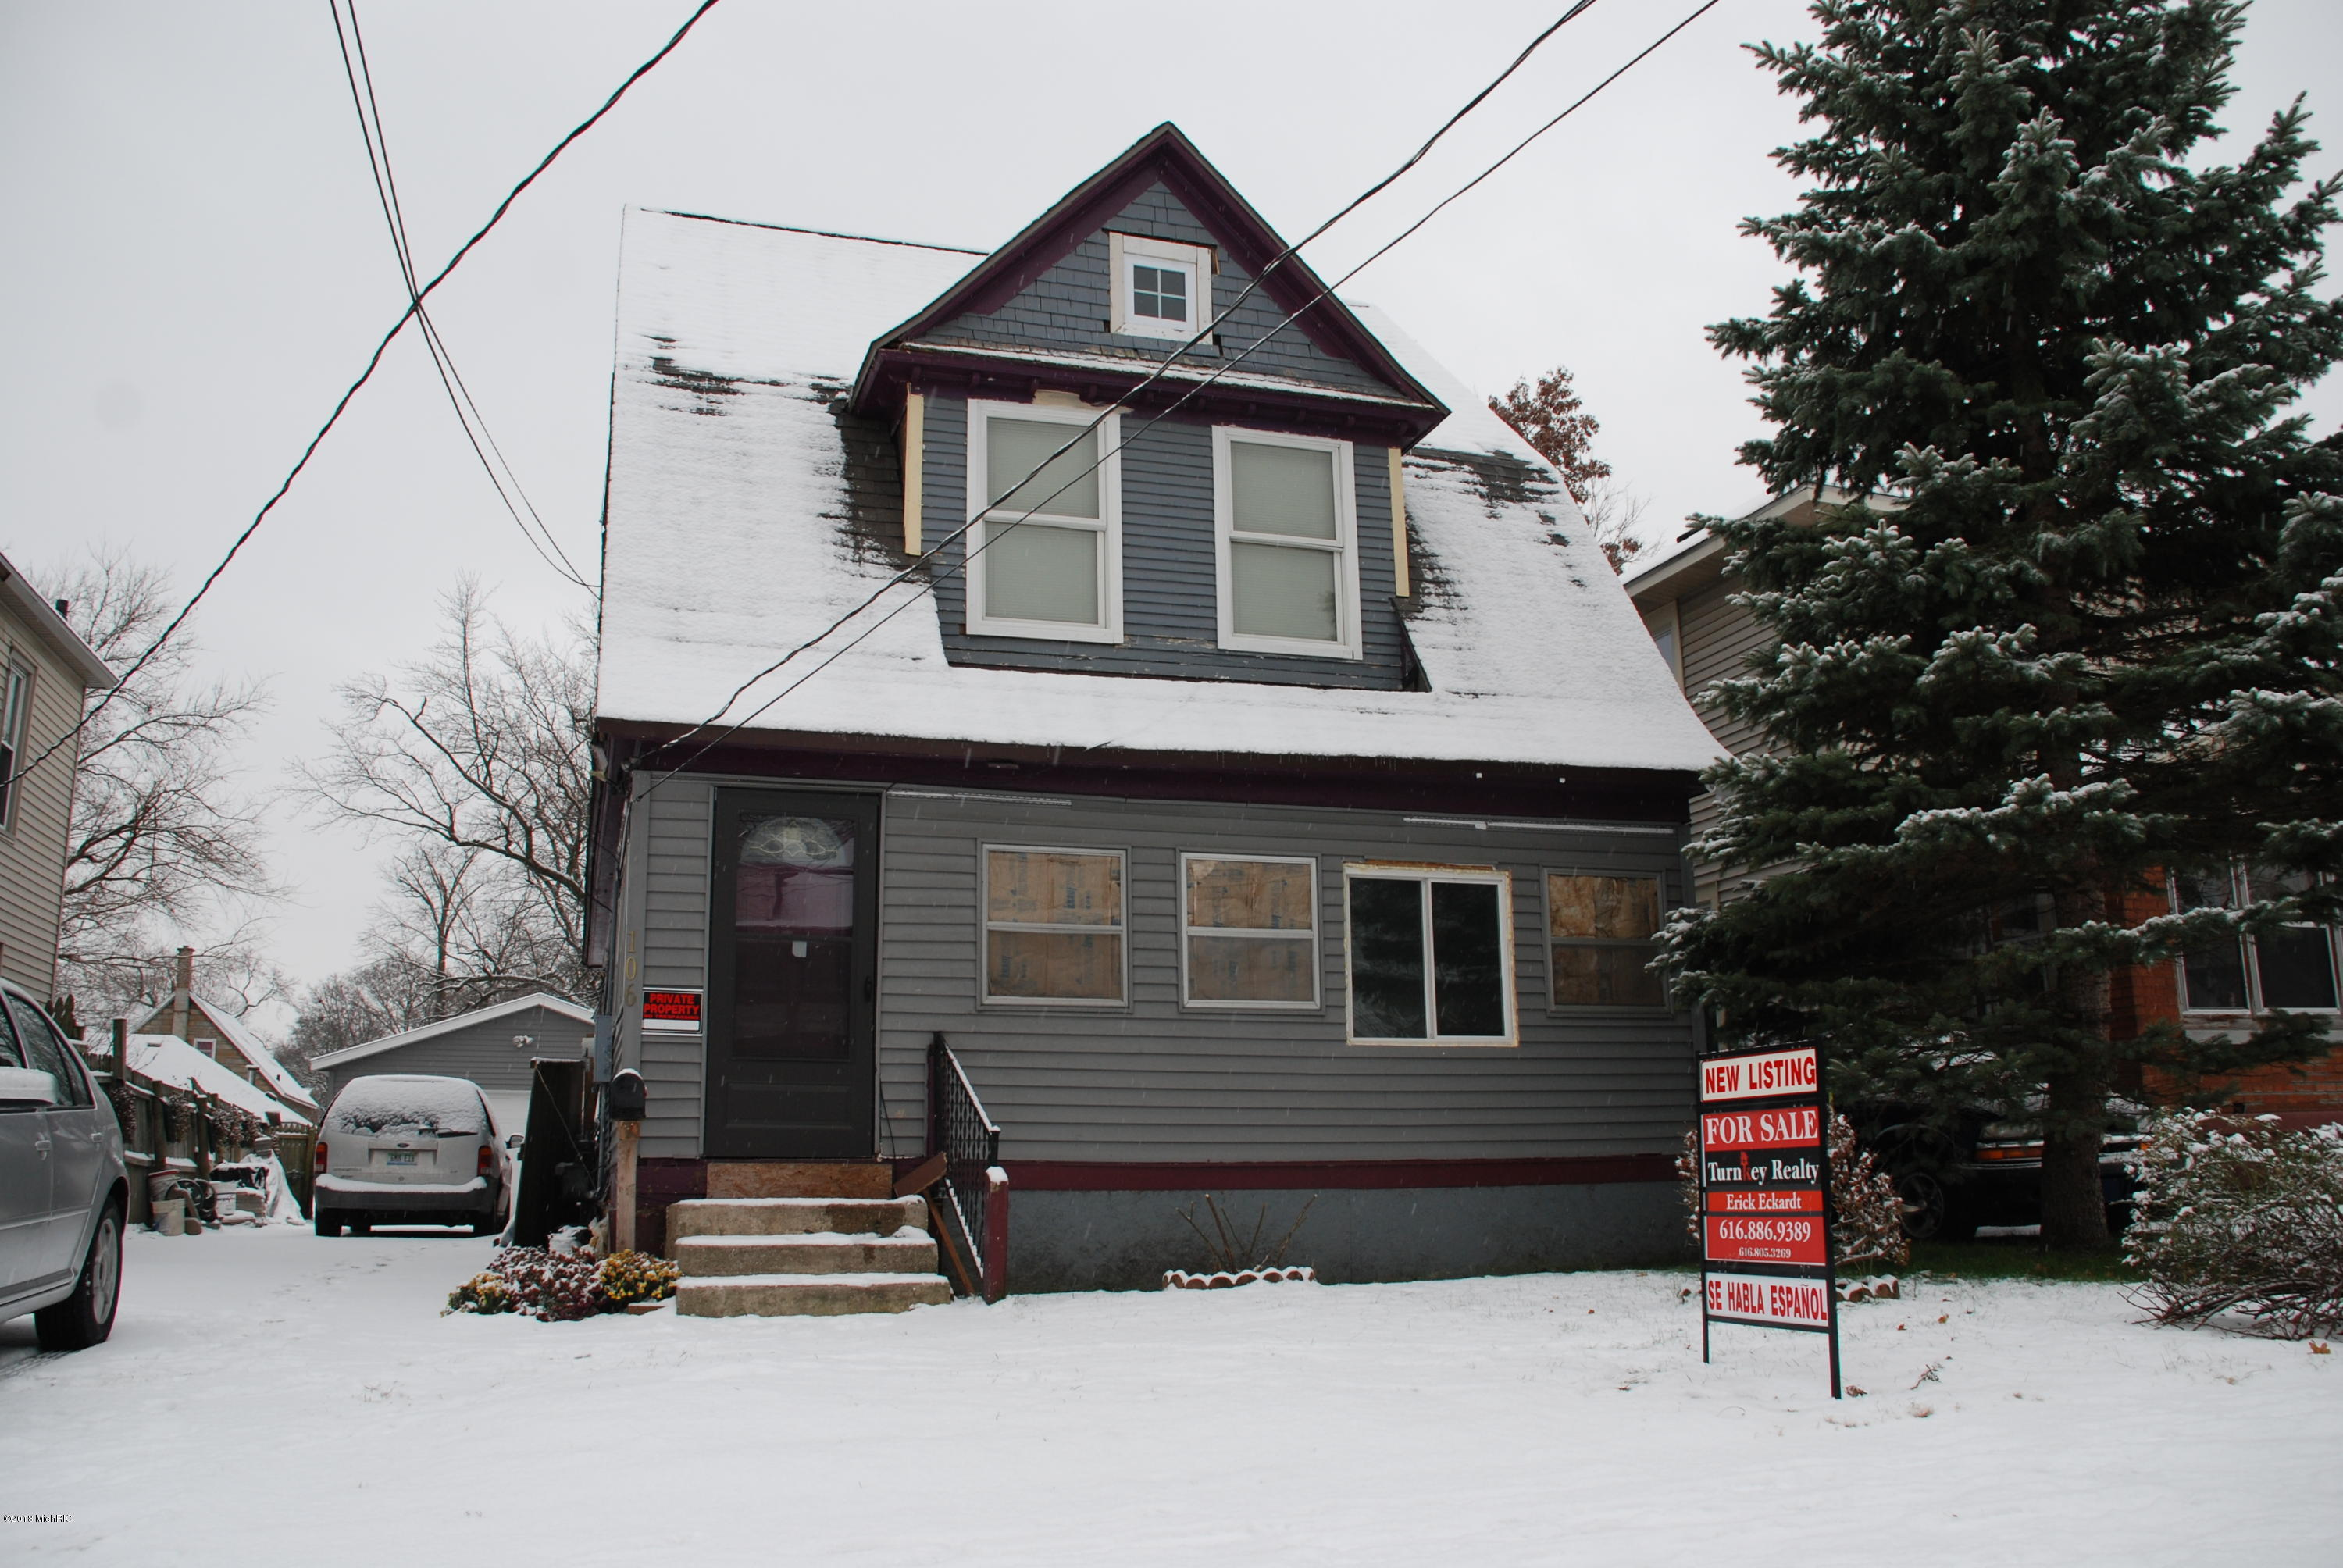 106 Sutton Street, Grand Rapids, Michigan 49507, 3 Bedrooms Bedrooms, ,2 BathroomsBathrooms,Residential,For Sale,Sutton,18057368